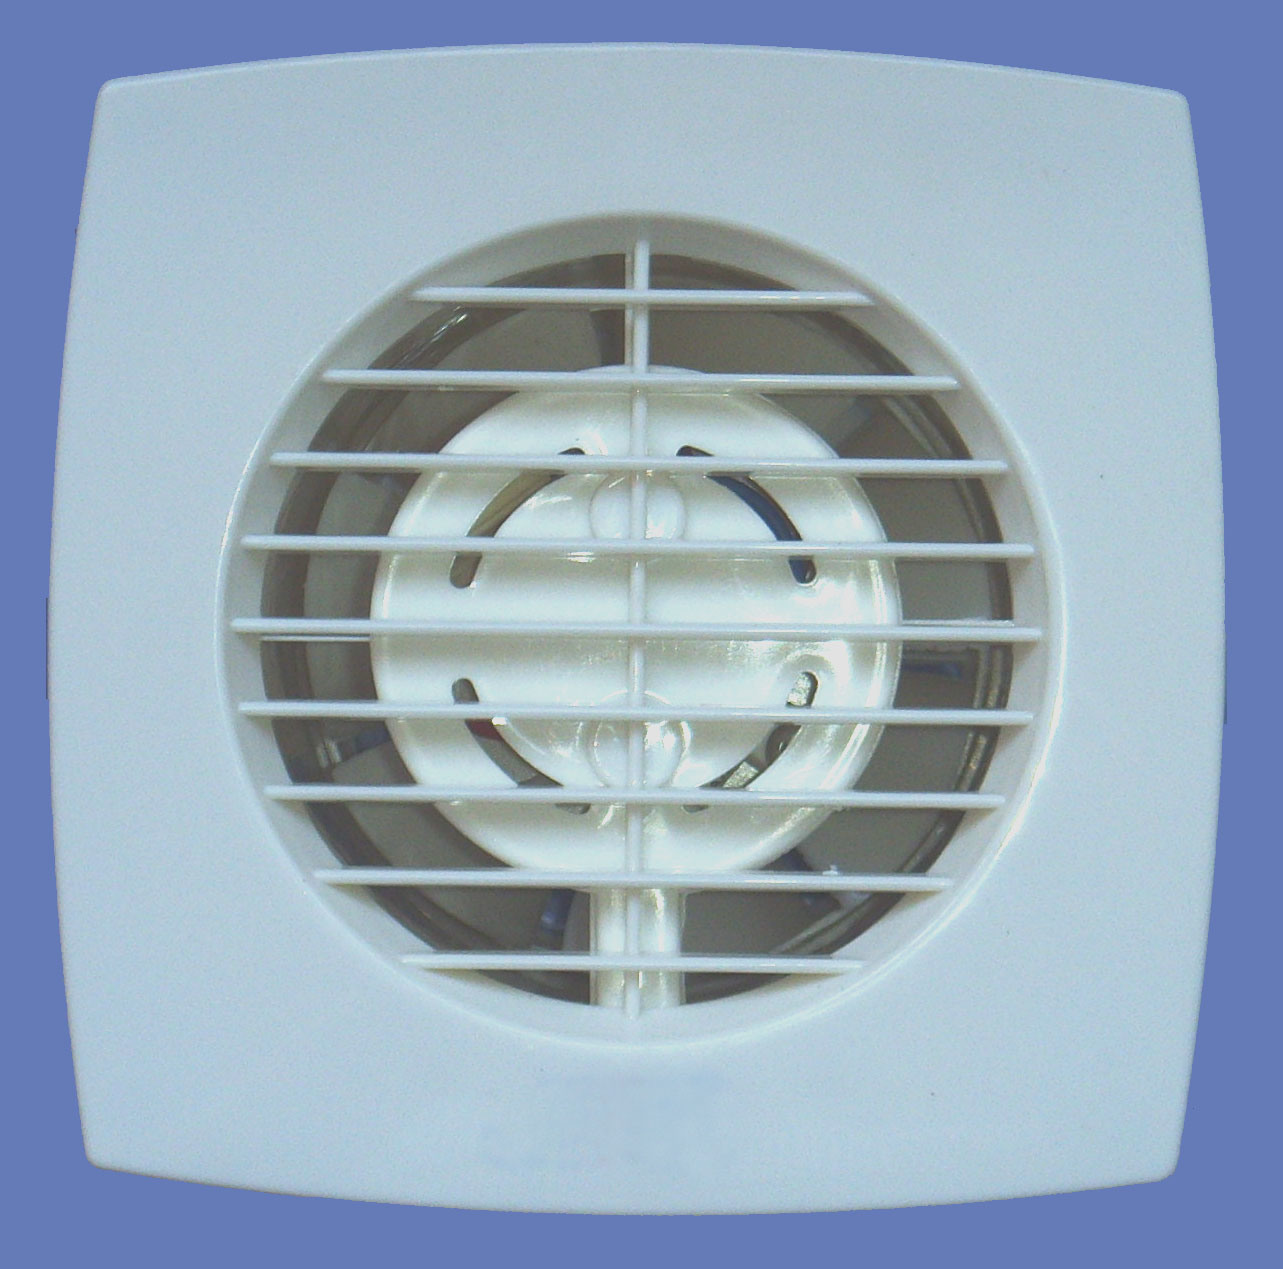 6 Bathroom Exhaust Fan Of The Information Is Not Available Right Now